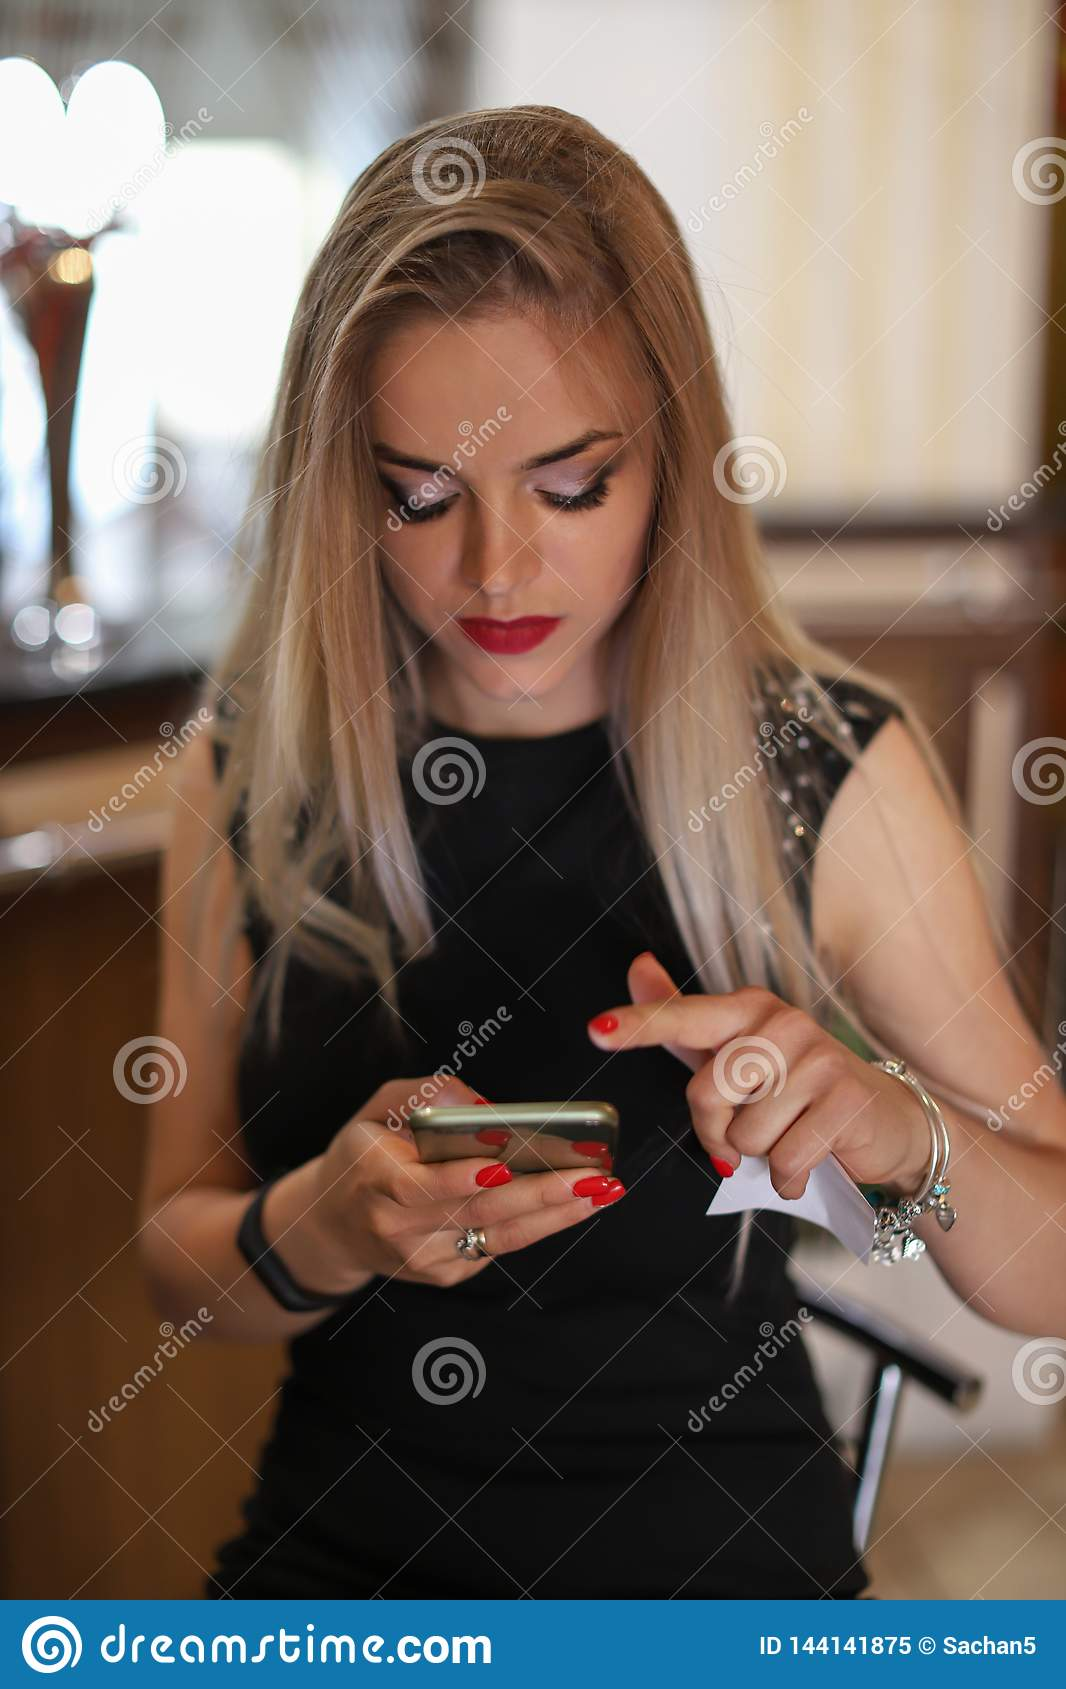 Young beautiful blonde woman writing or reading sms messages online on a smart phone in a restaurant. Young stylish girl using